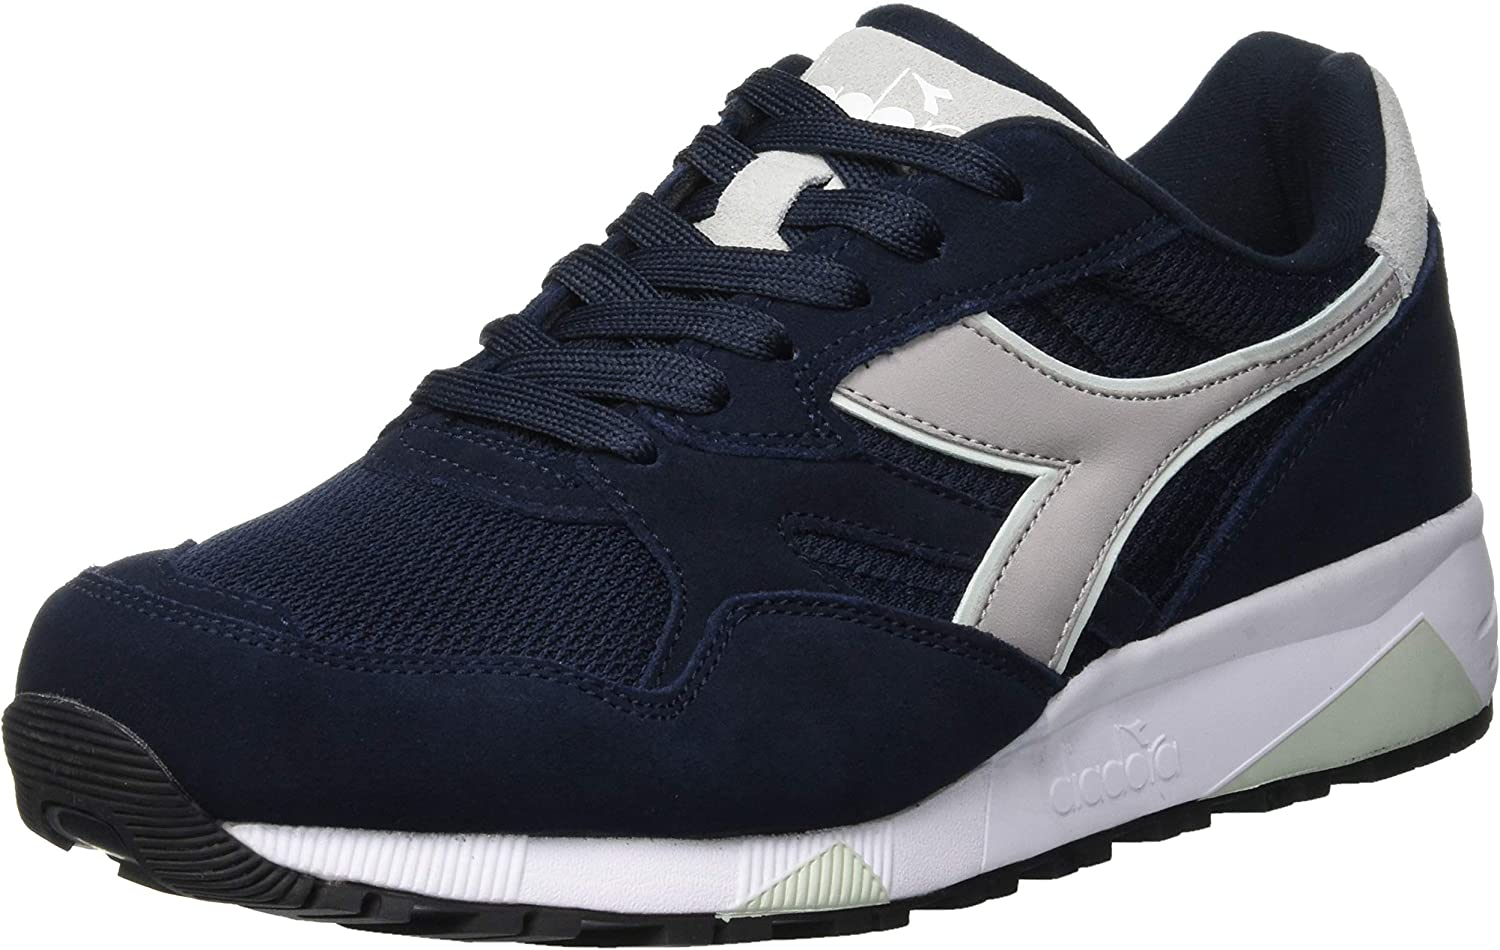 Diadora Unisex Adults' N902 S Gymnastics shoes